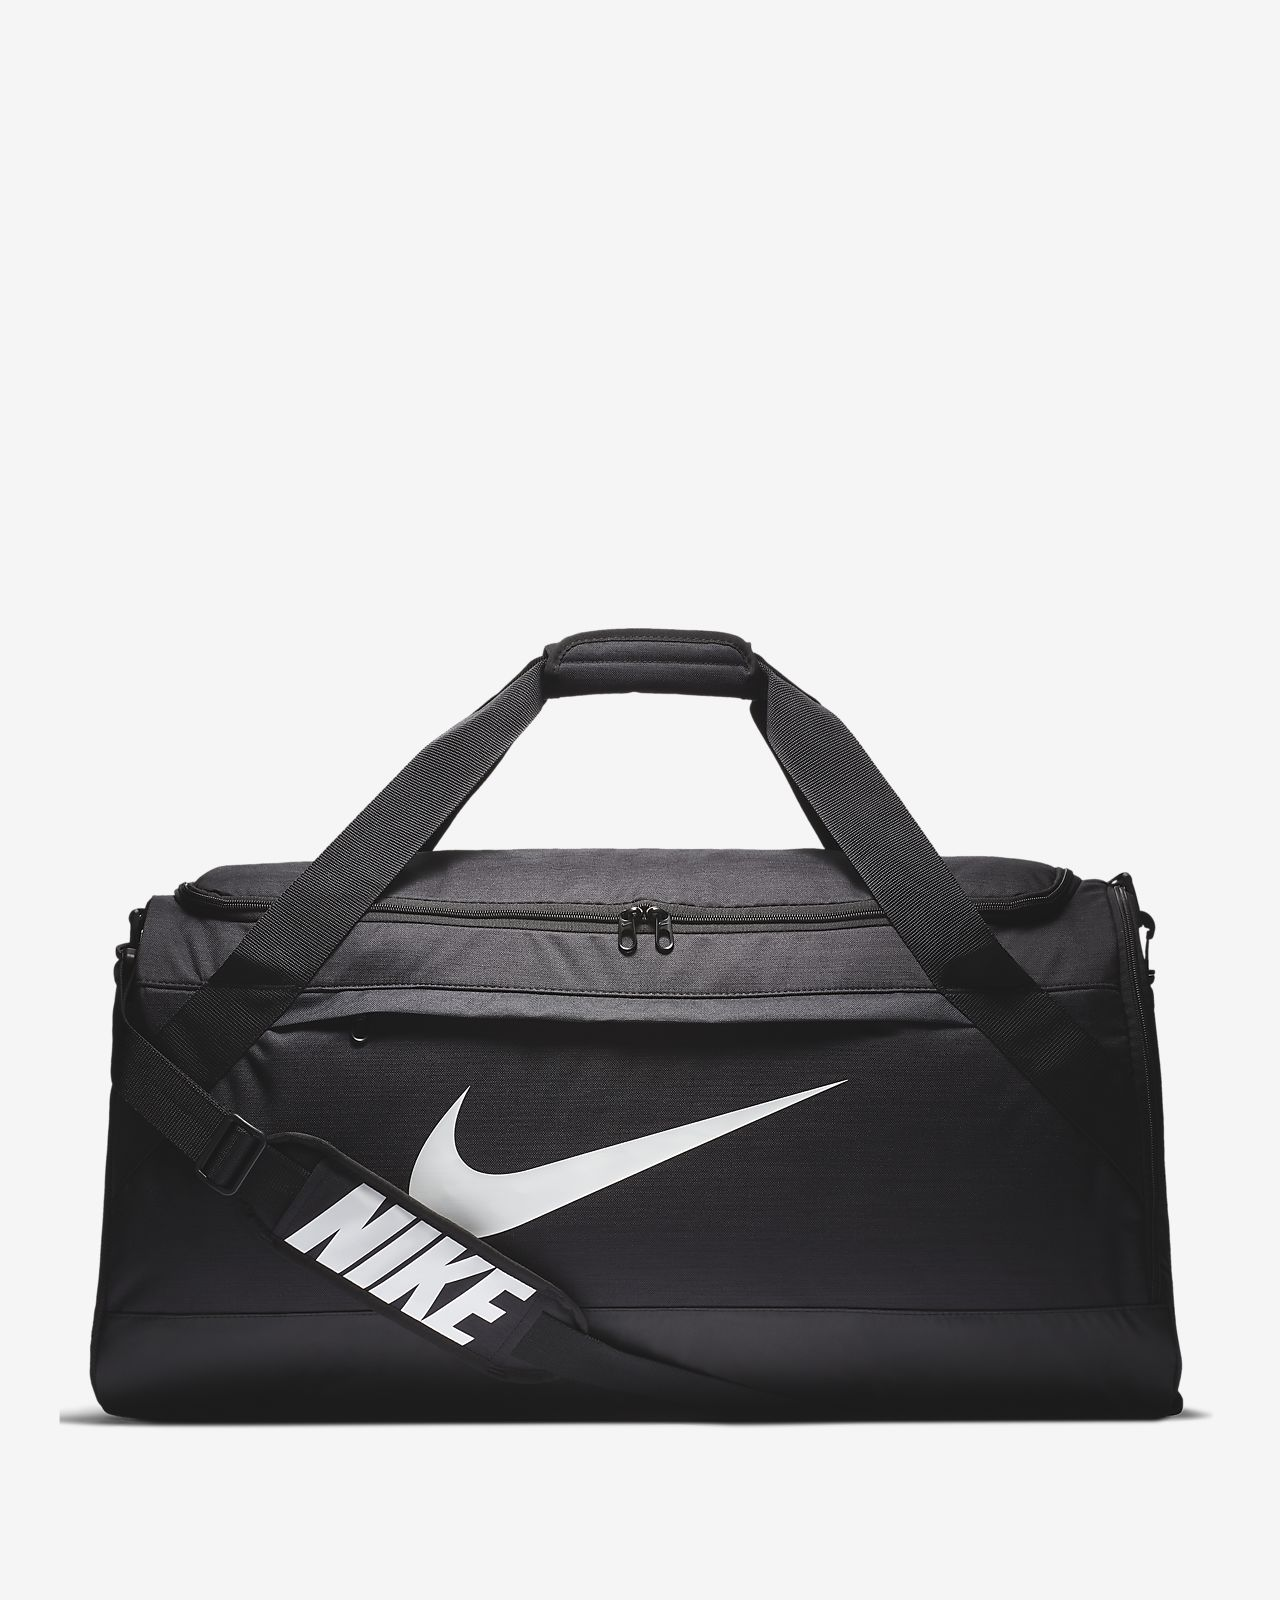 83a40b55282fdb Nike Brasilia Training Duffel Bag (Large). Nike.com